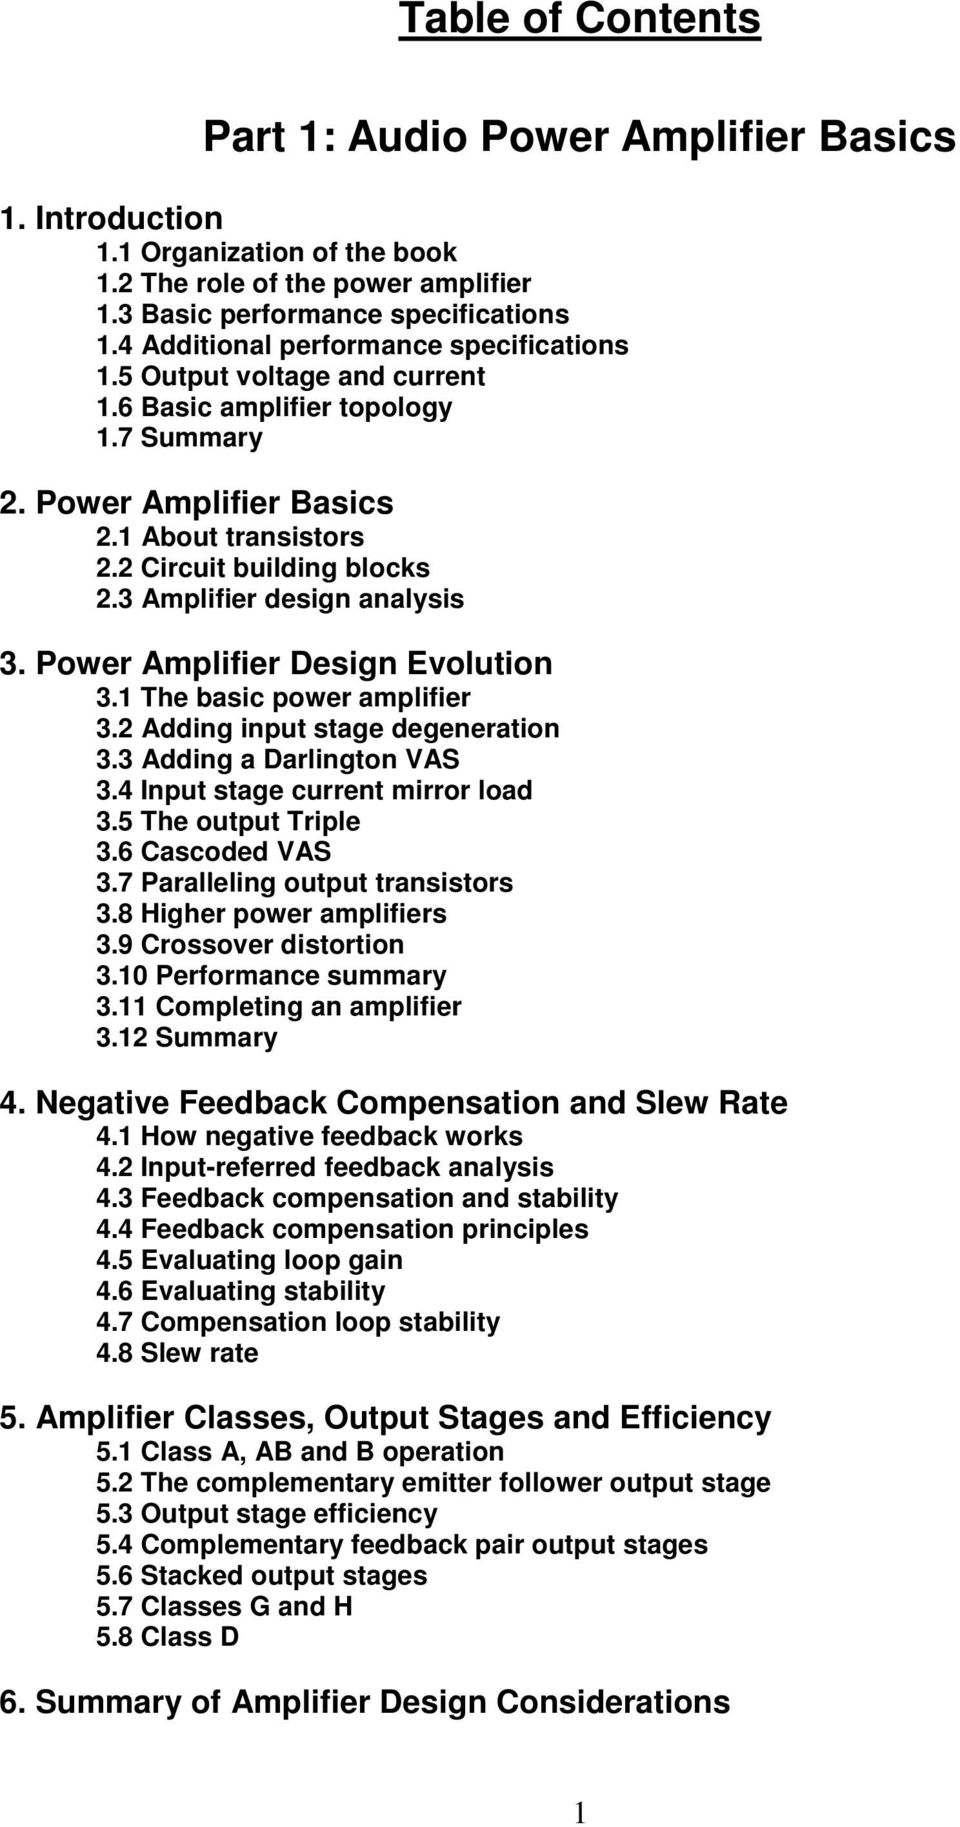 Table Of Contents Part 1 Audio Power Amplifier Basics Pdf Class D Amplifiers Fundamentals Operation And Recent Developments 3 Design Analysis Evolution 31 The Basic 32